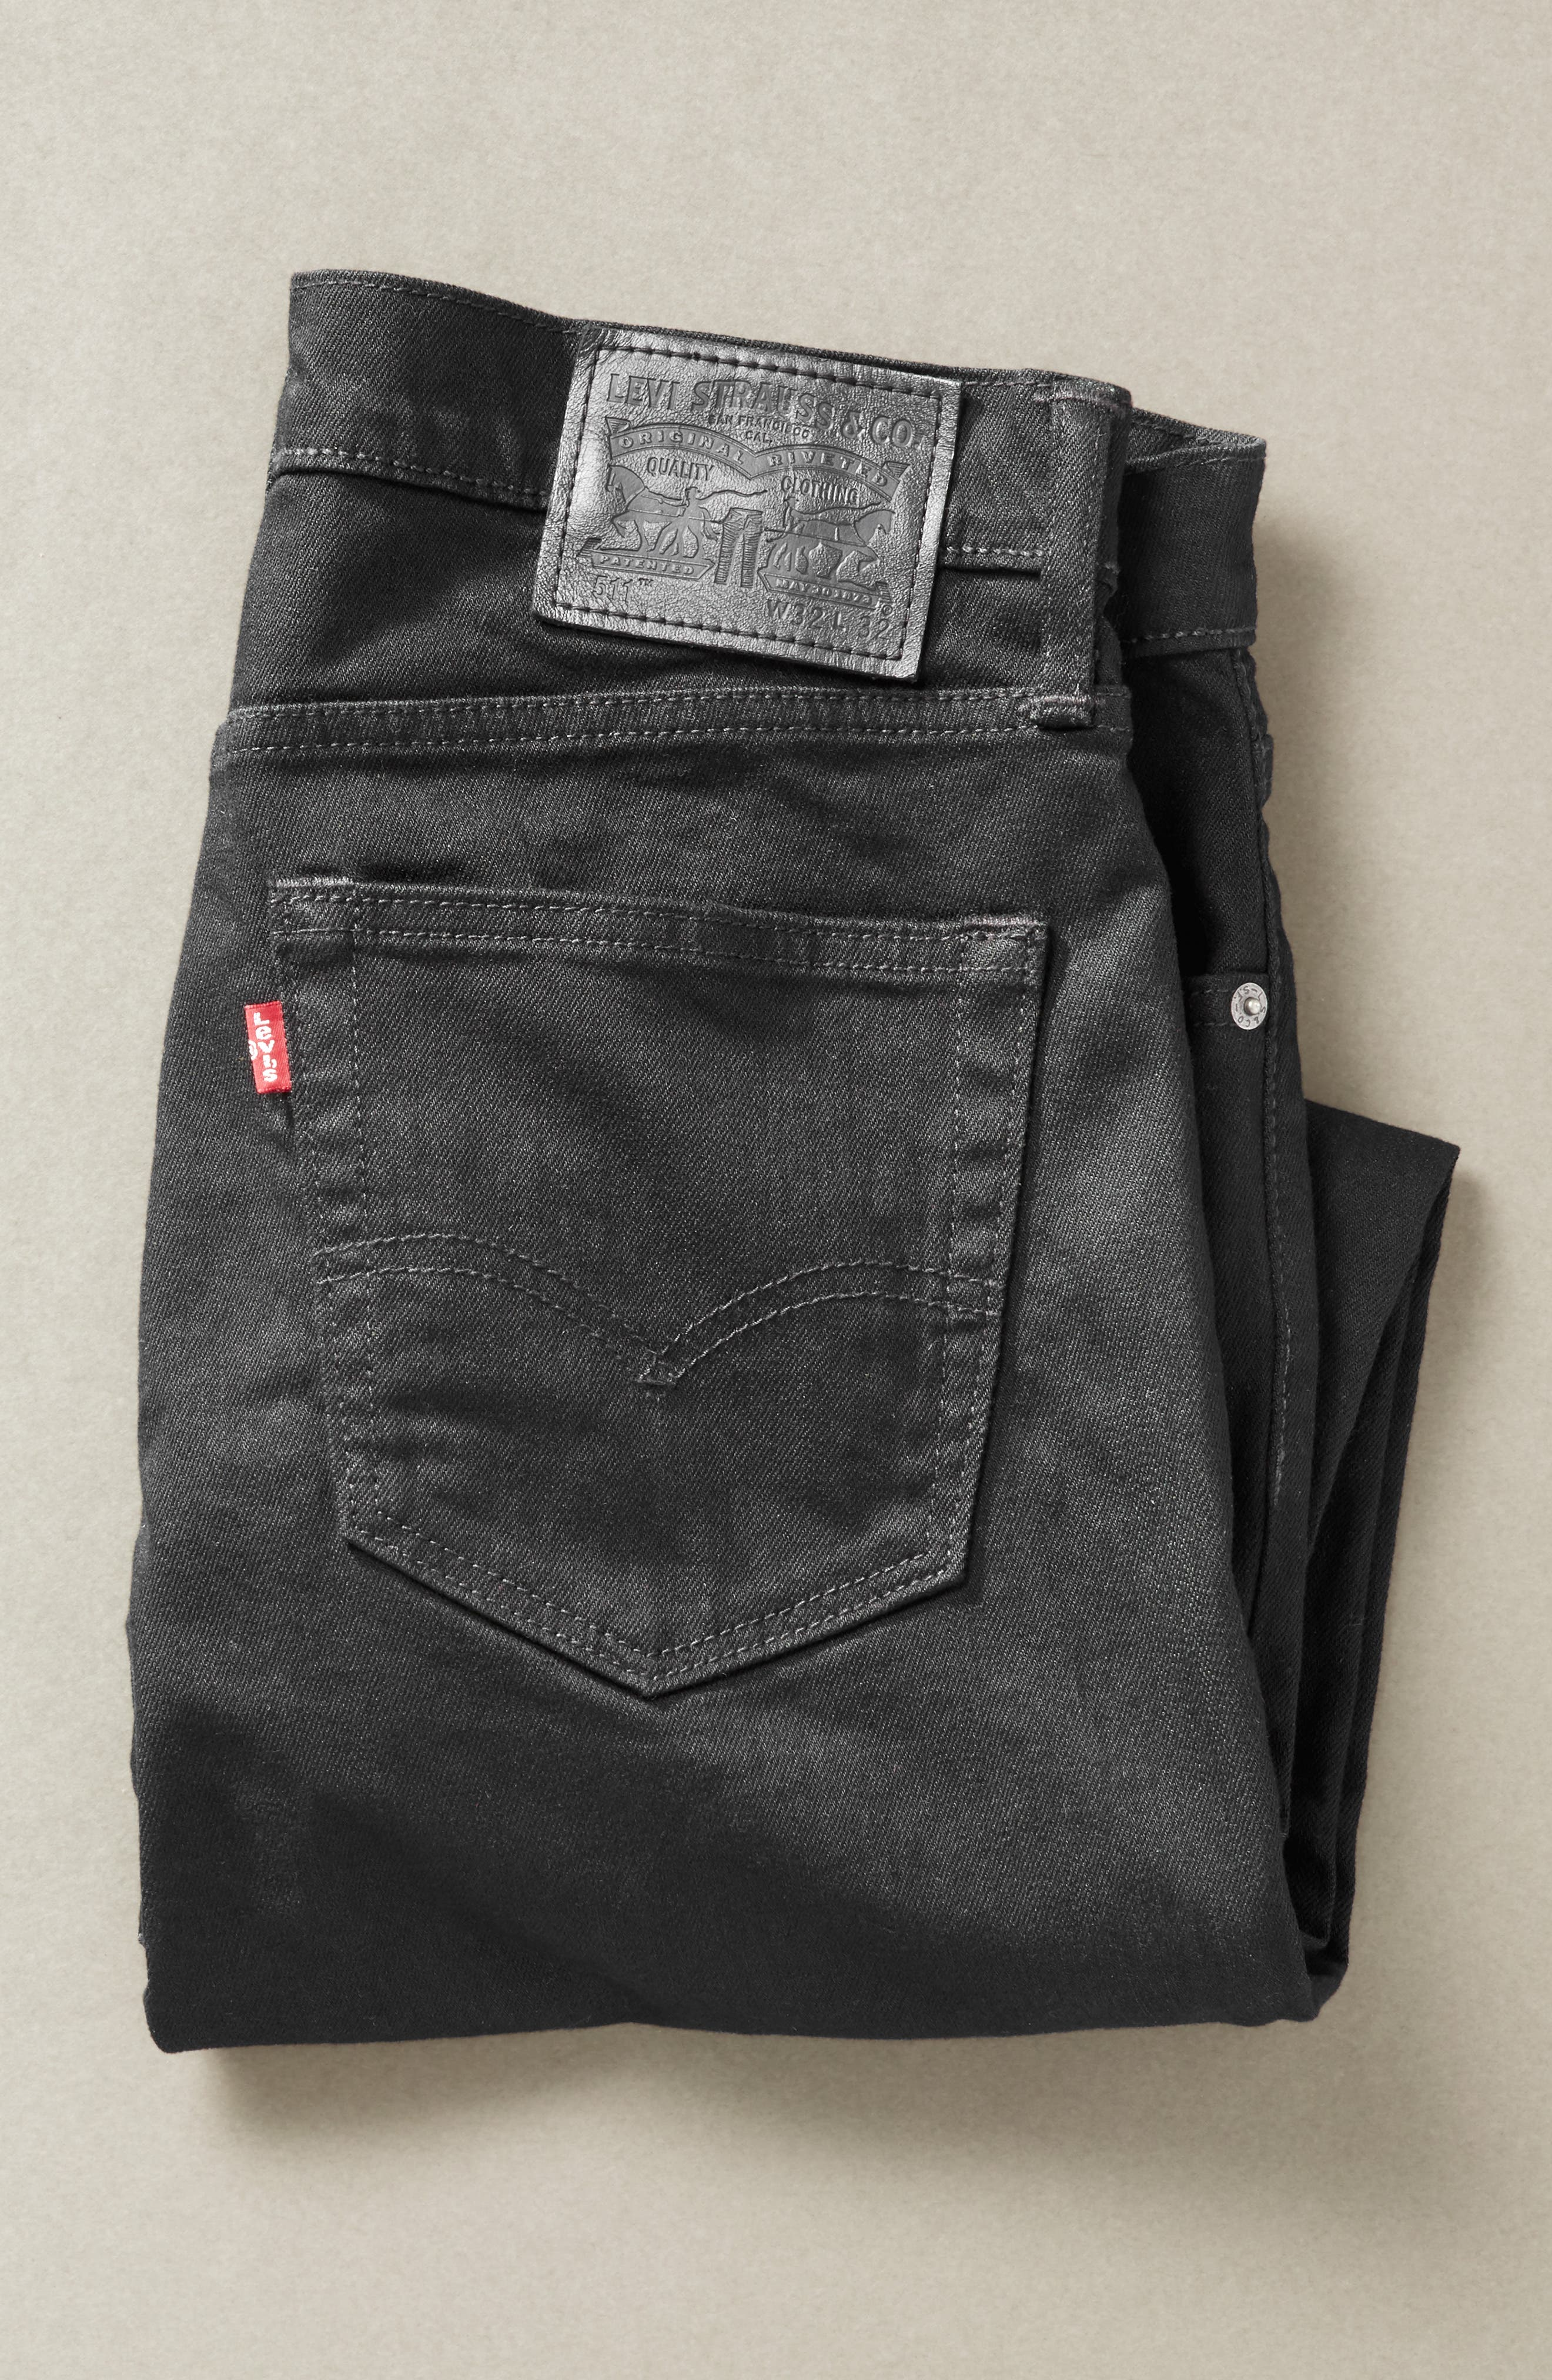 511<sup>™</sup> Slim Fit Jeans,                             Alternate thumbnail 12, color,                             NIGHTSHINE